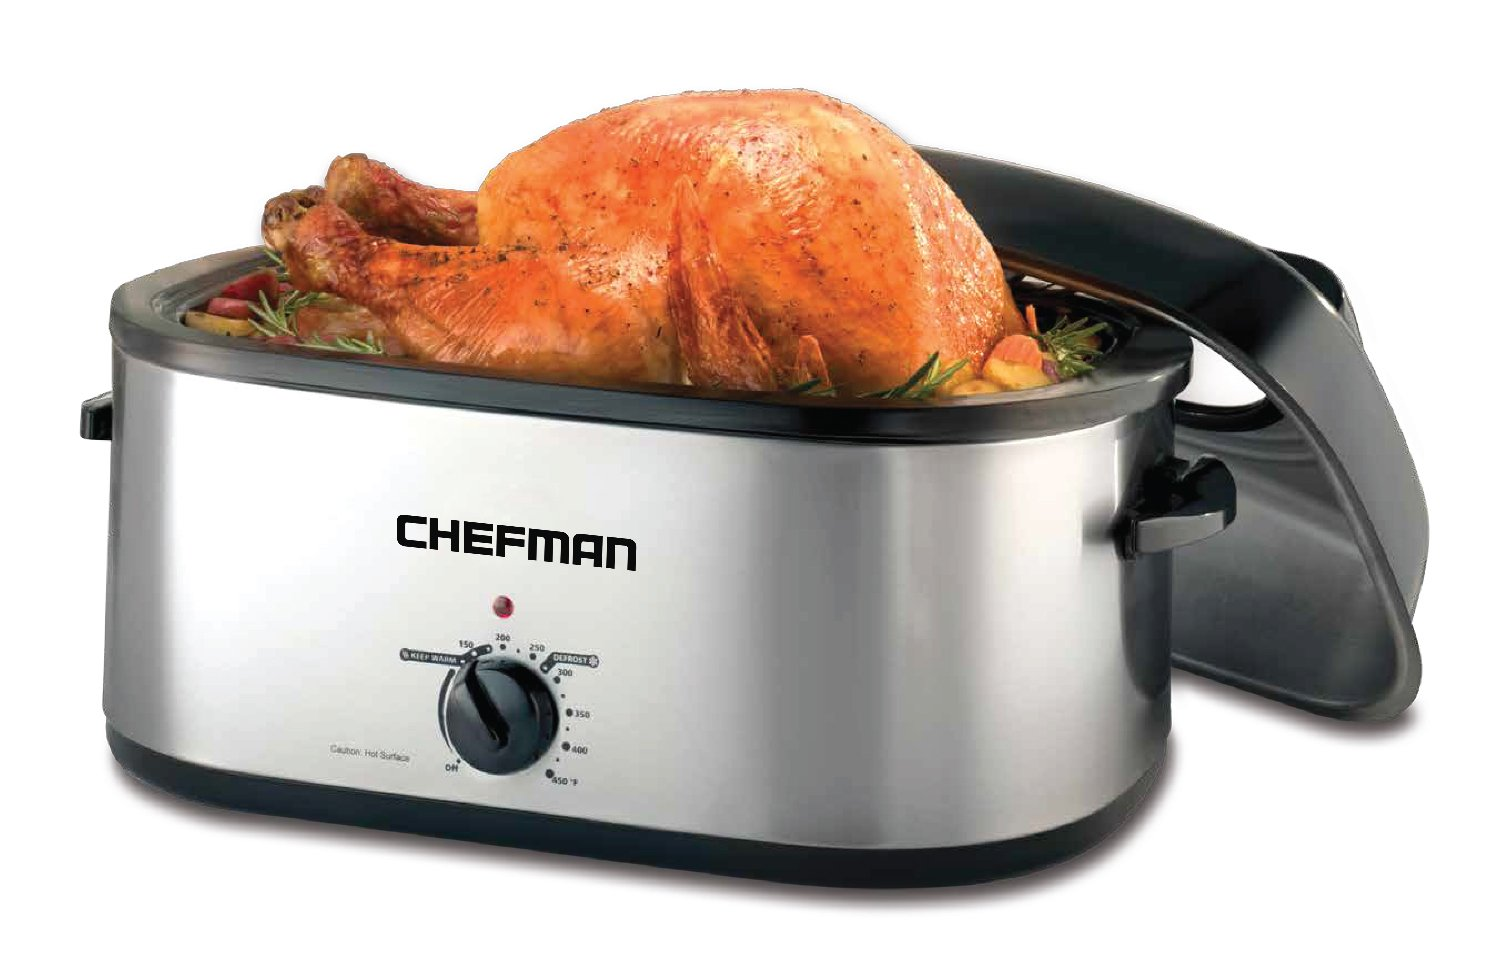 Chefman 20 Quart Roaster Oven Slow Cooker w/Window Viewing Lid Perfect Cooking Roasting, Baking, Serving and More, Family Size, Black (Stainless Steel)